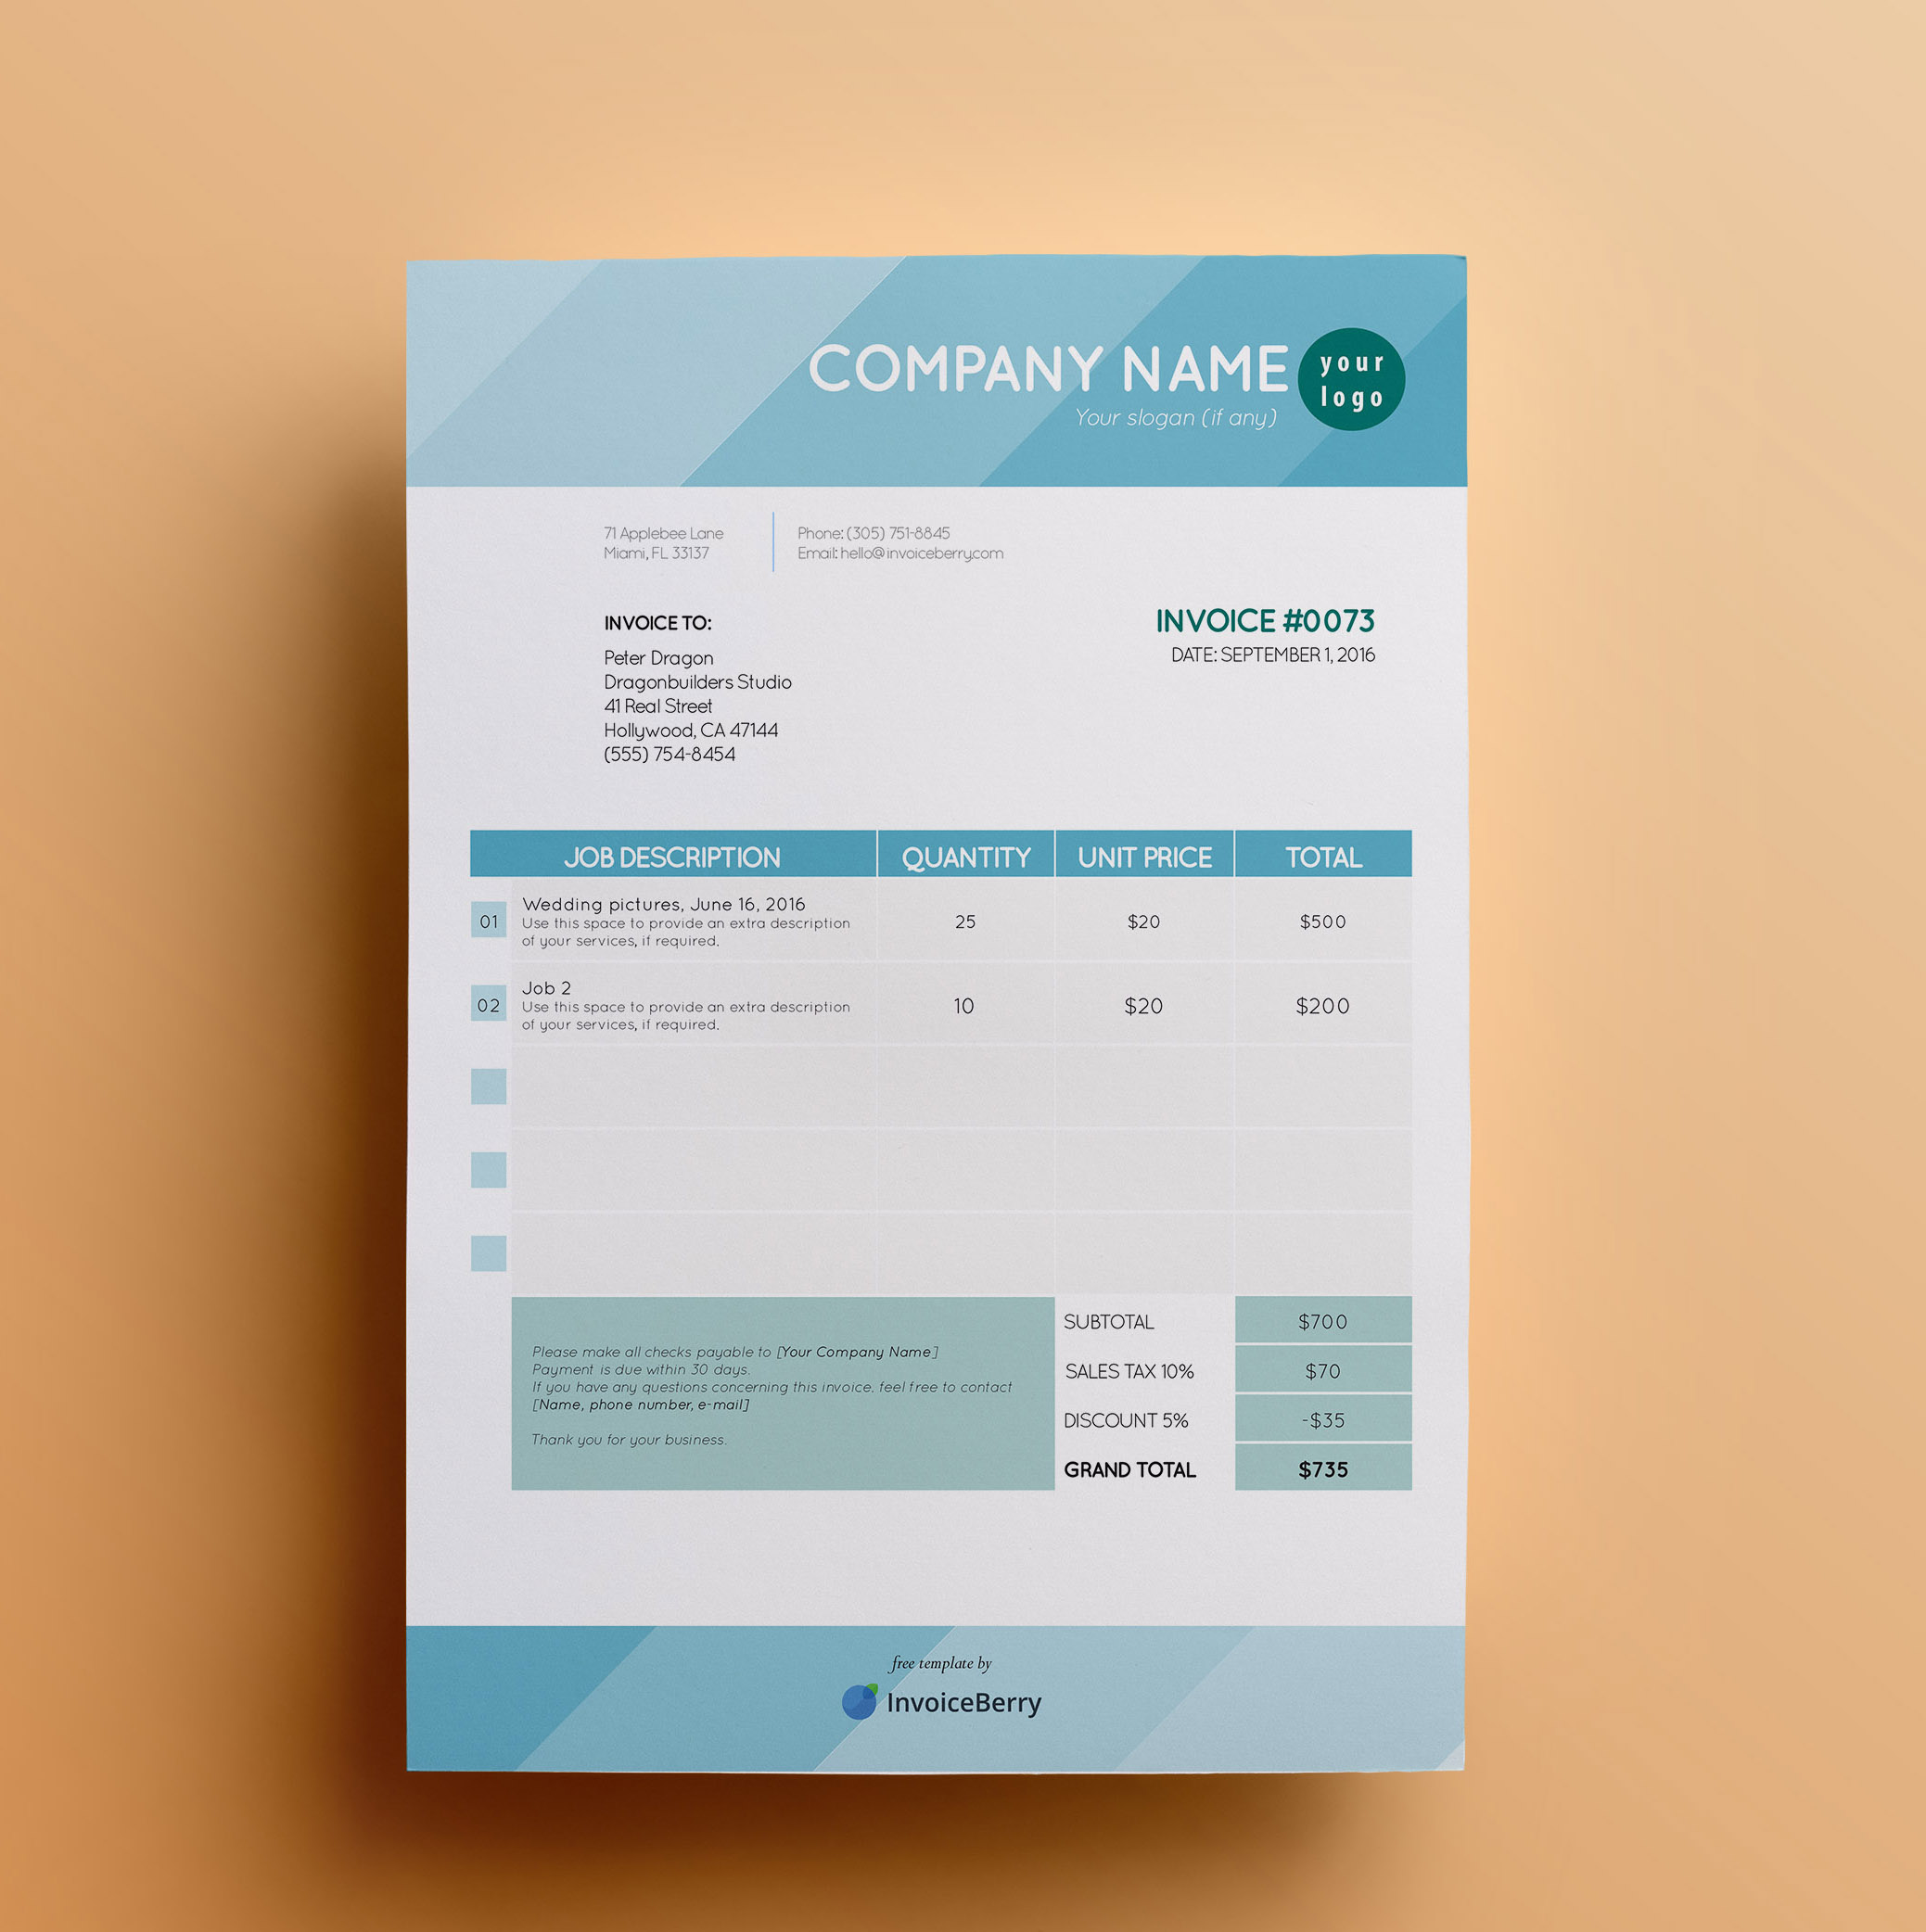 Free Invoice Templates By InvoiceBerry The Grid System - Free invoicing templates